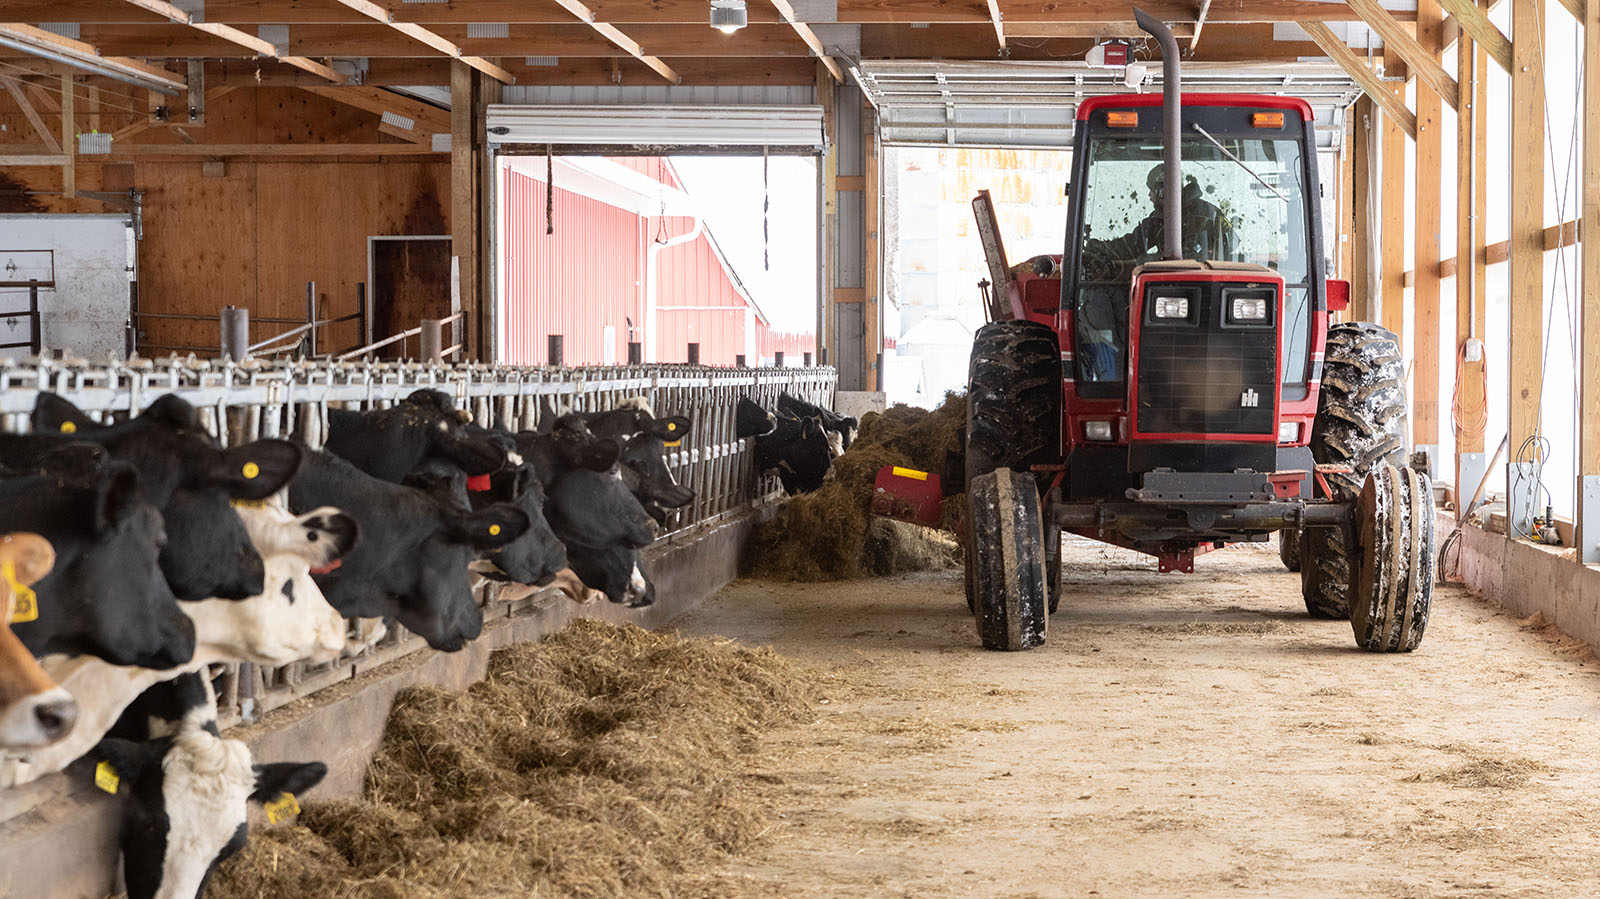 A tractor brings the hay into the barn.